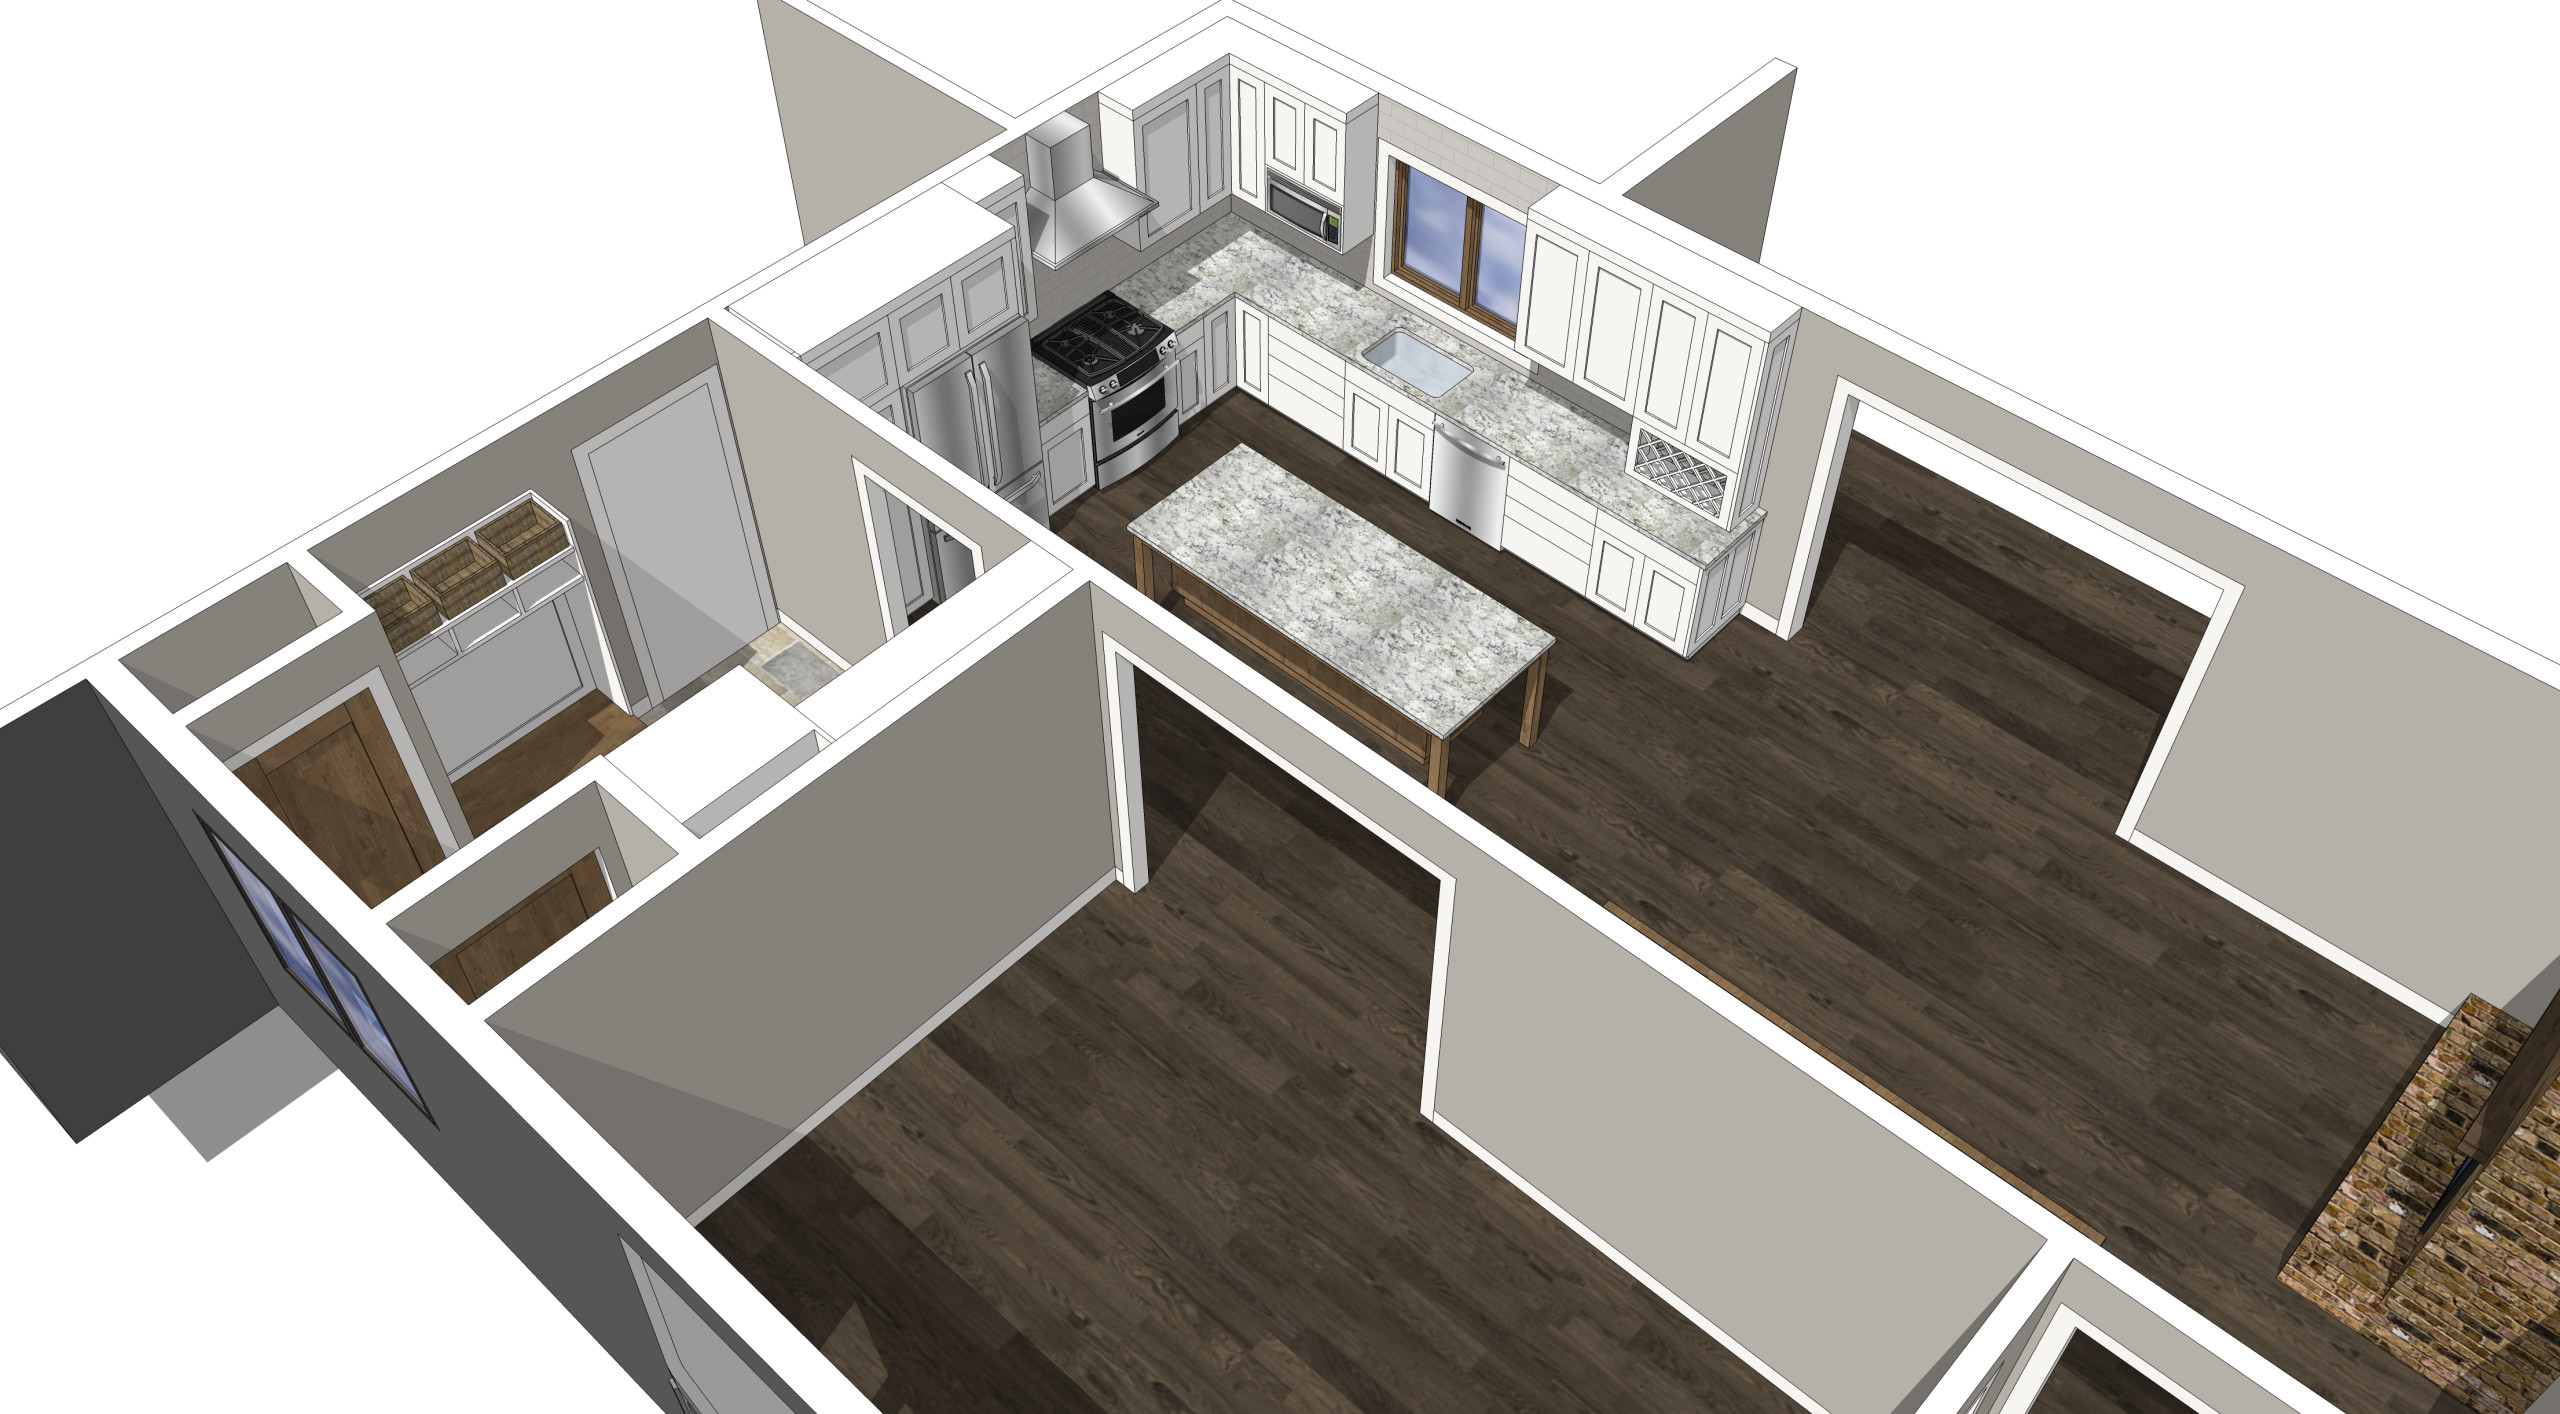 New Brighton - 3D living space remodel